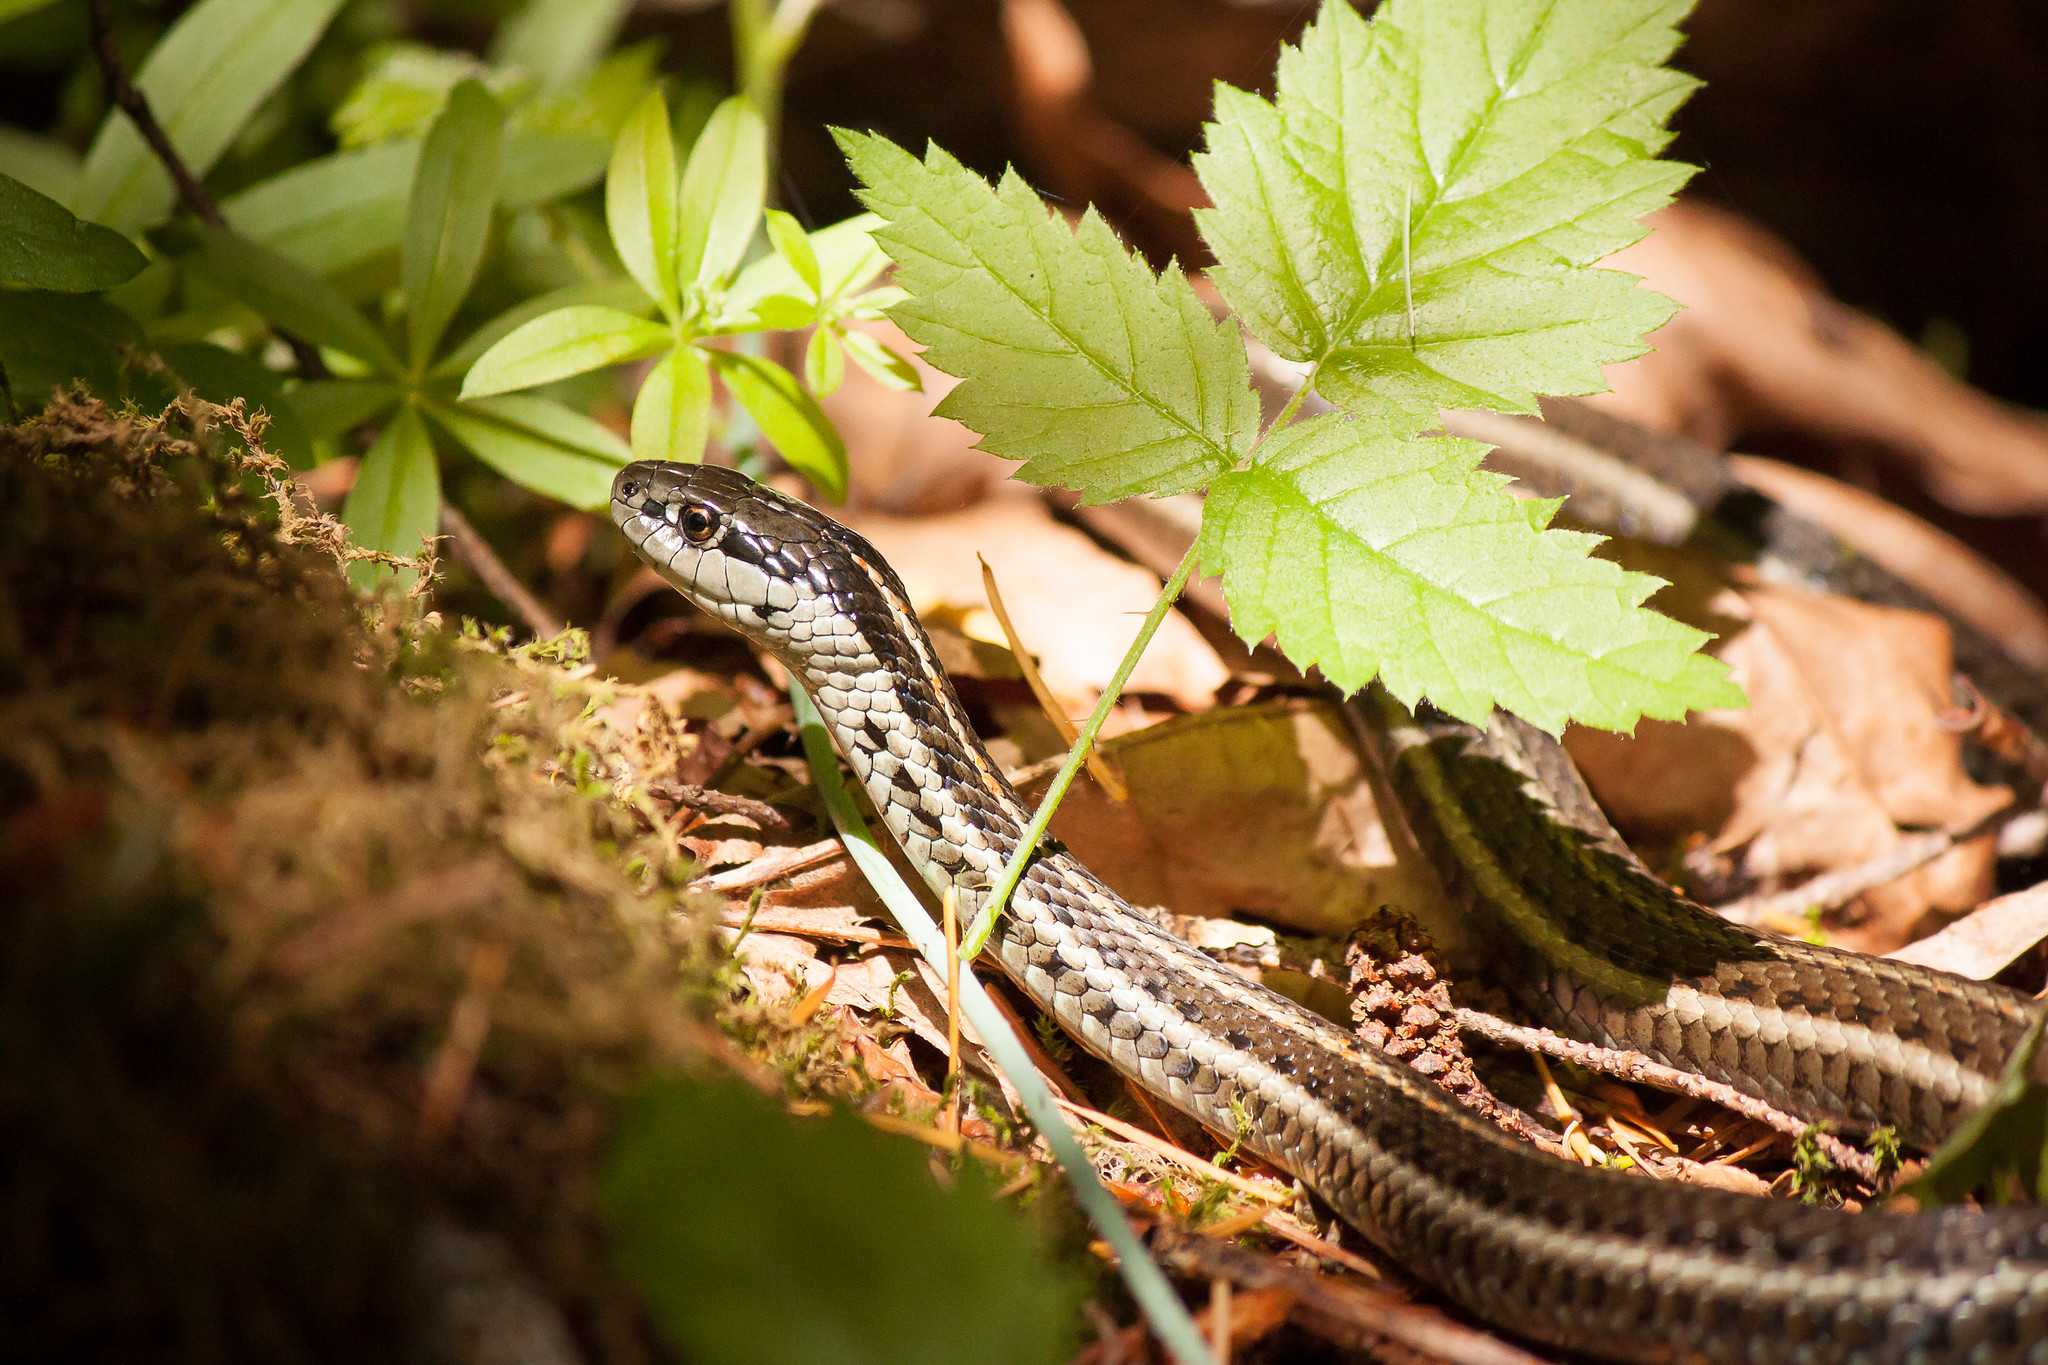 Snakes and Hiking: 5 Tips to Stay Safe & Have Fun — Washington Trails Association